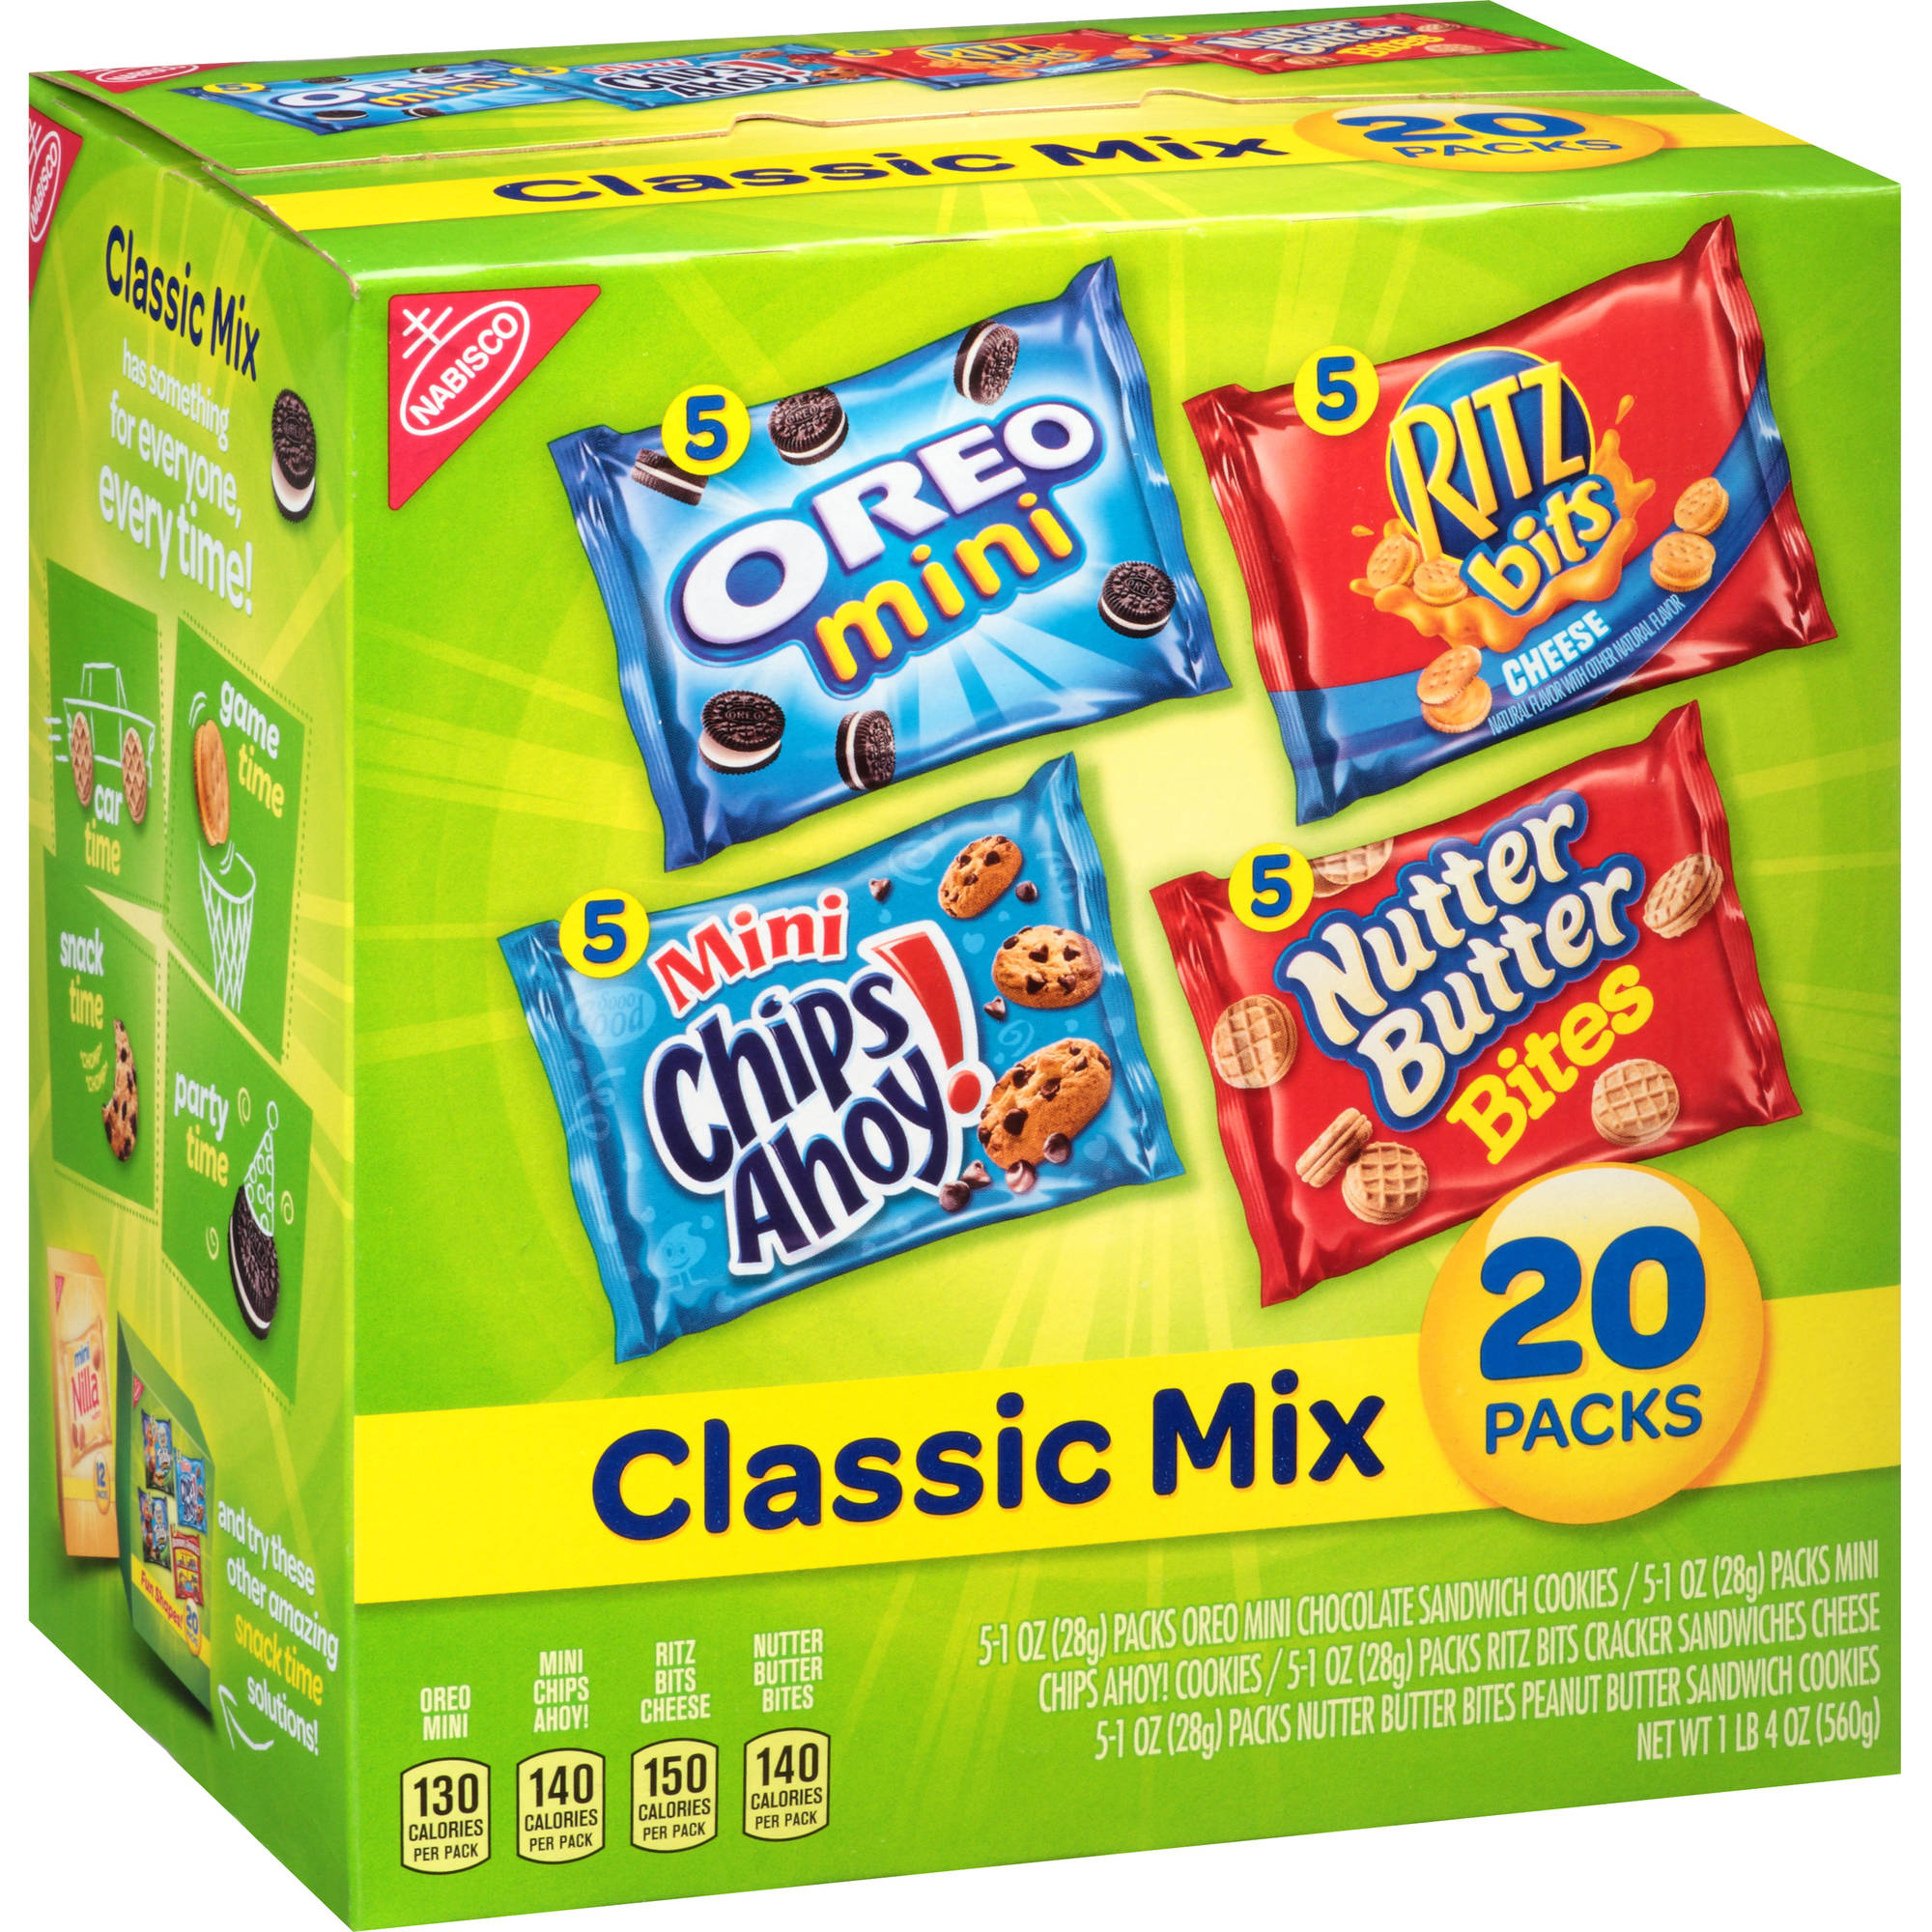 Nabisco Classic Mix Cookie Variety Pack, 1 oz, 20 count